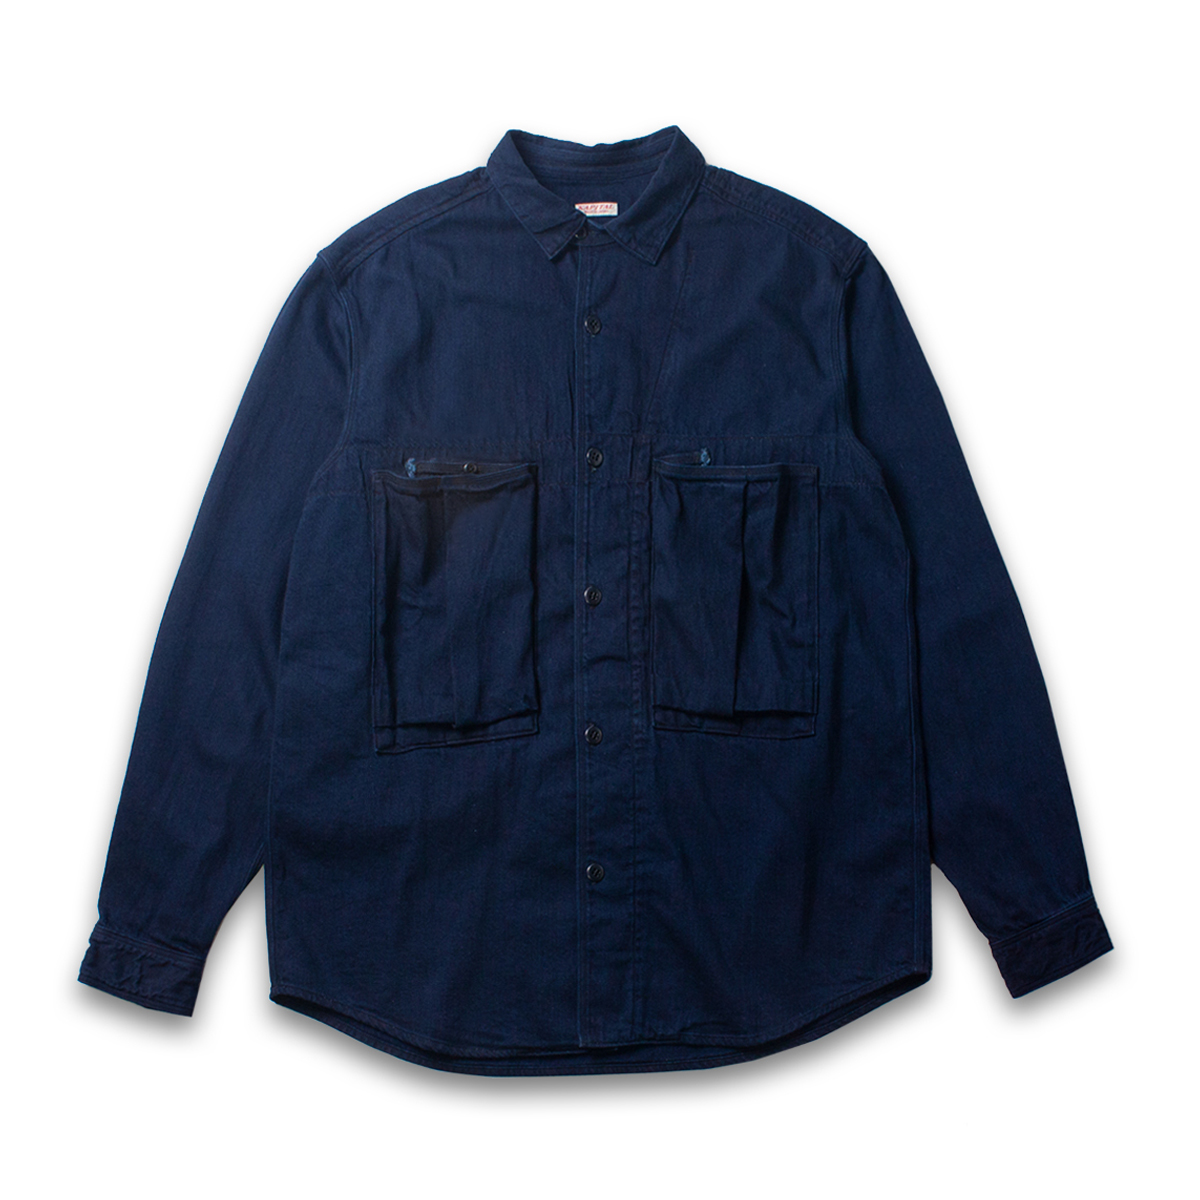 [KAPITAL] 8oz IDG x IDG DENIM ANORAK SHIRT 'INDIGO'